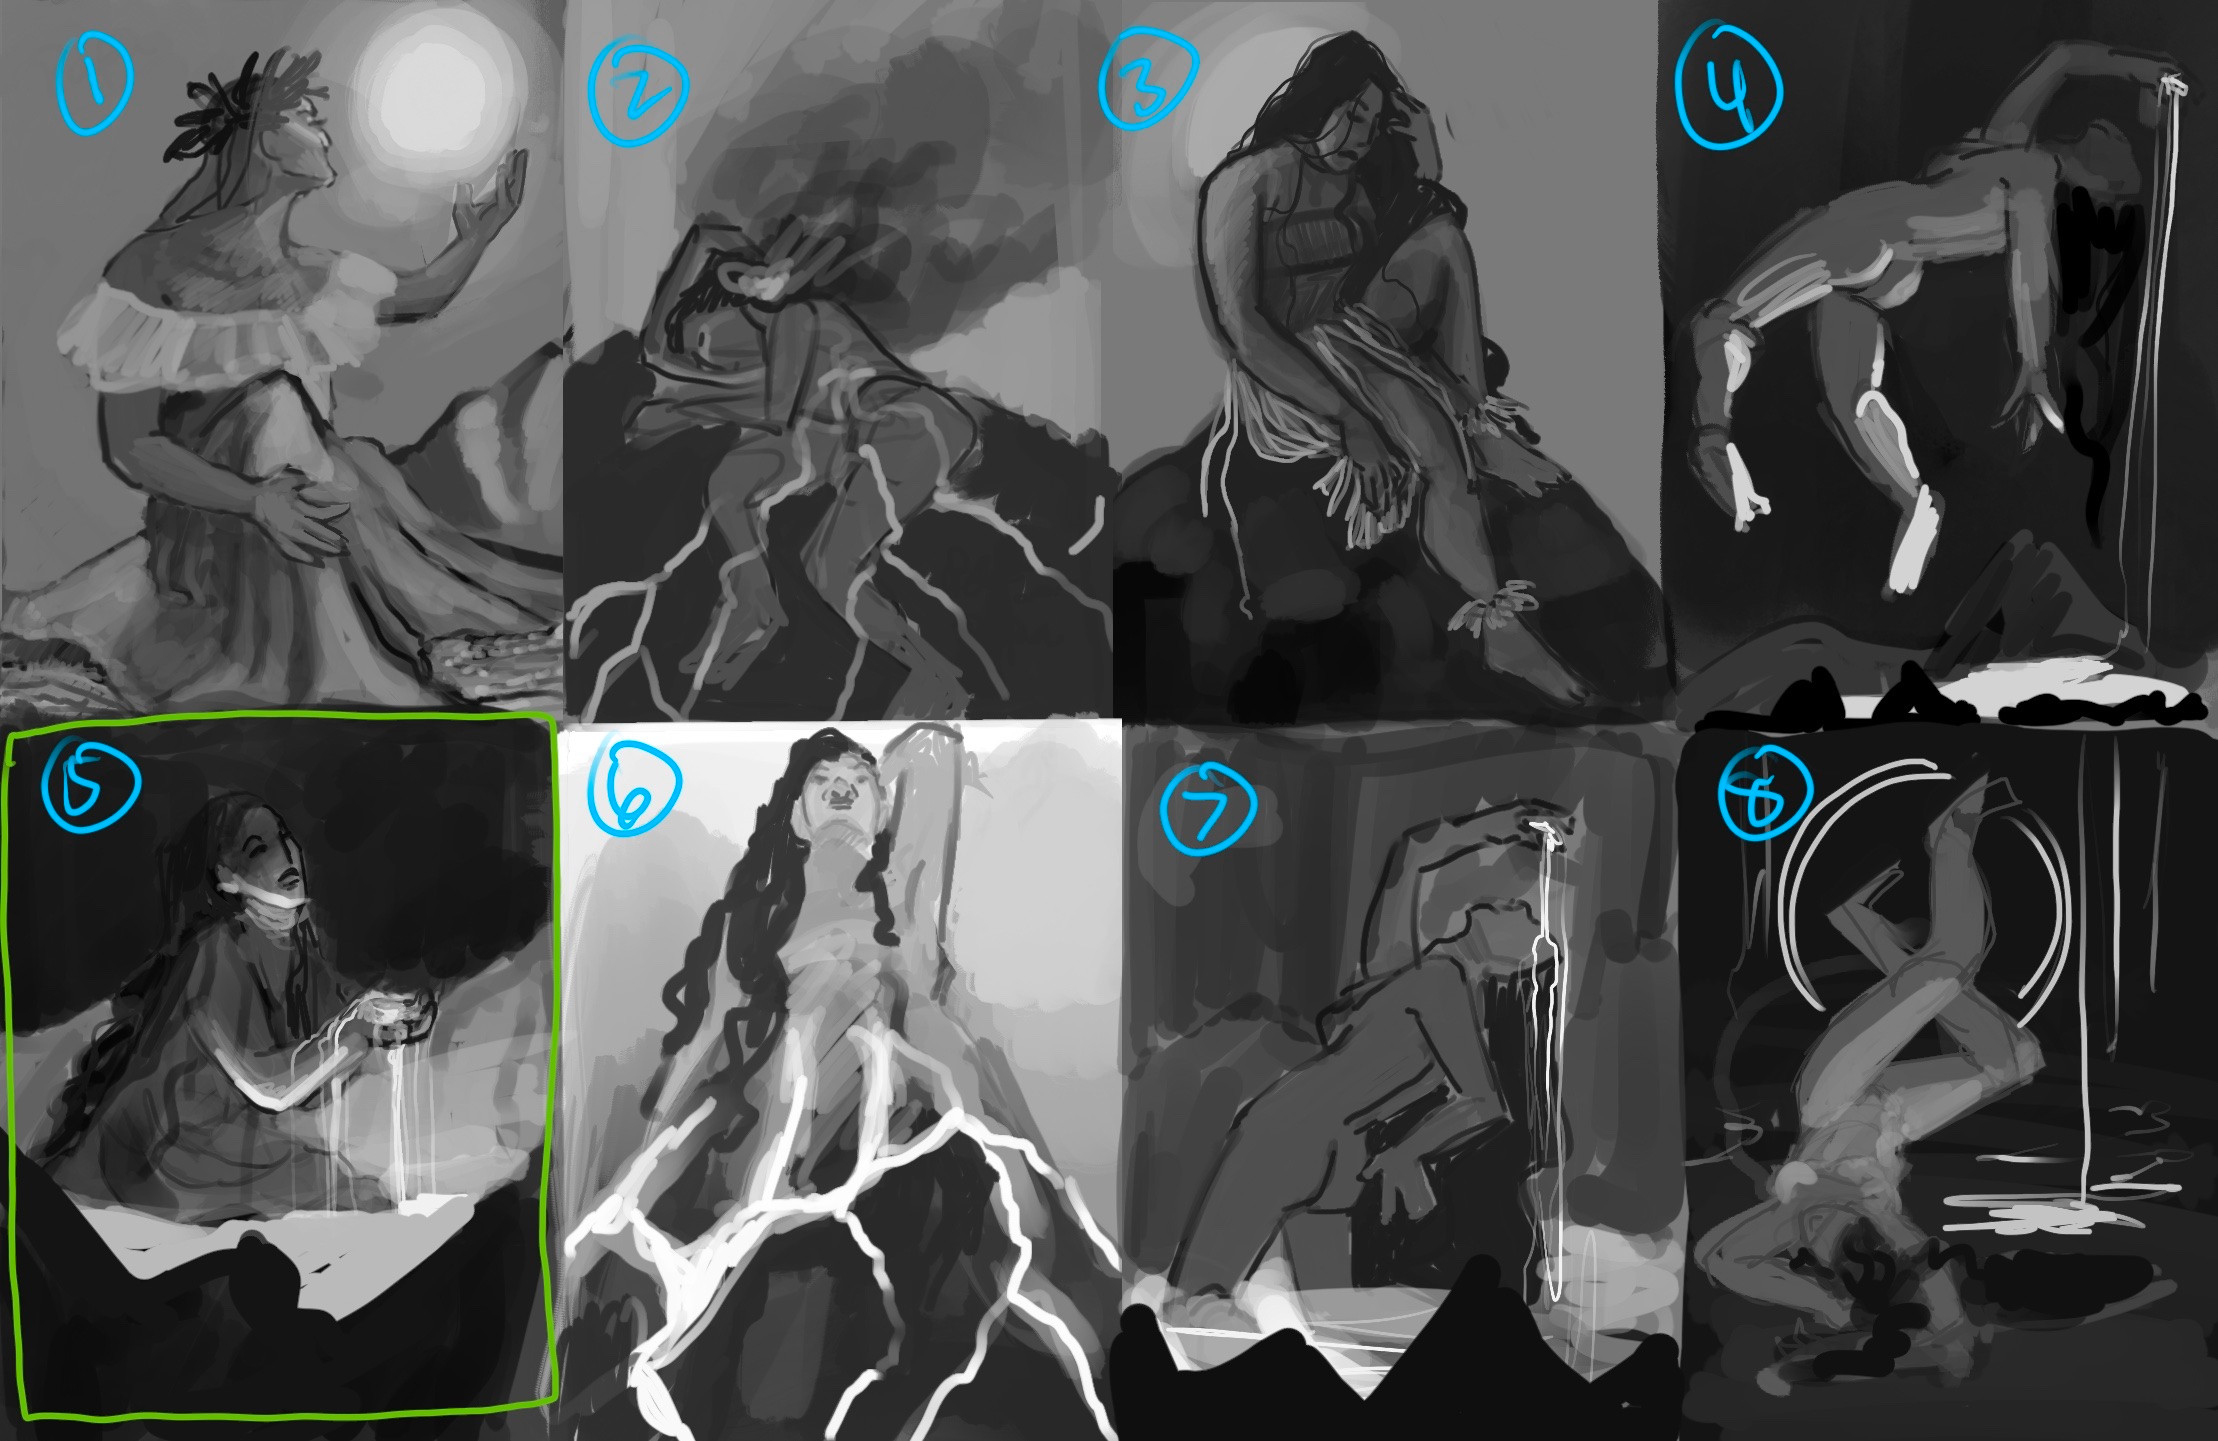 Thumbnails! The concept I picked is outlined in green.